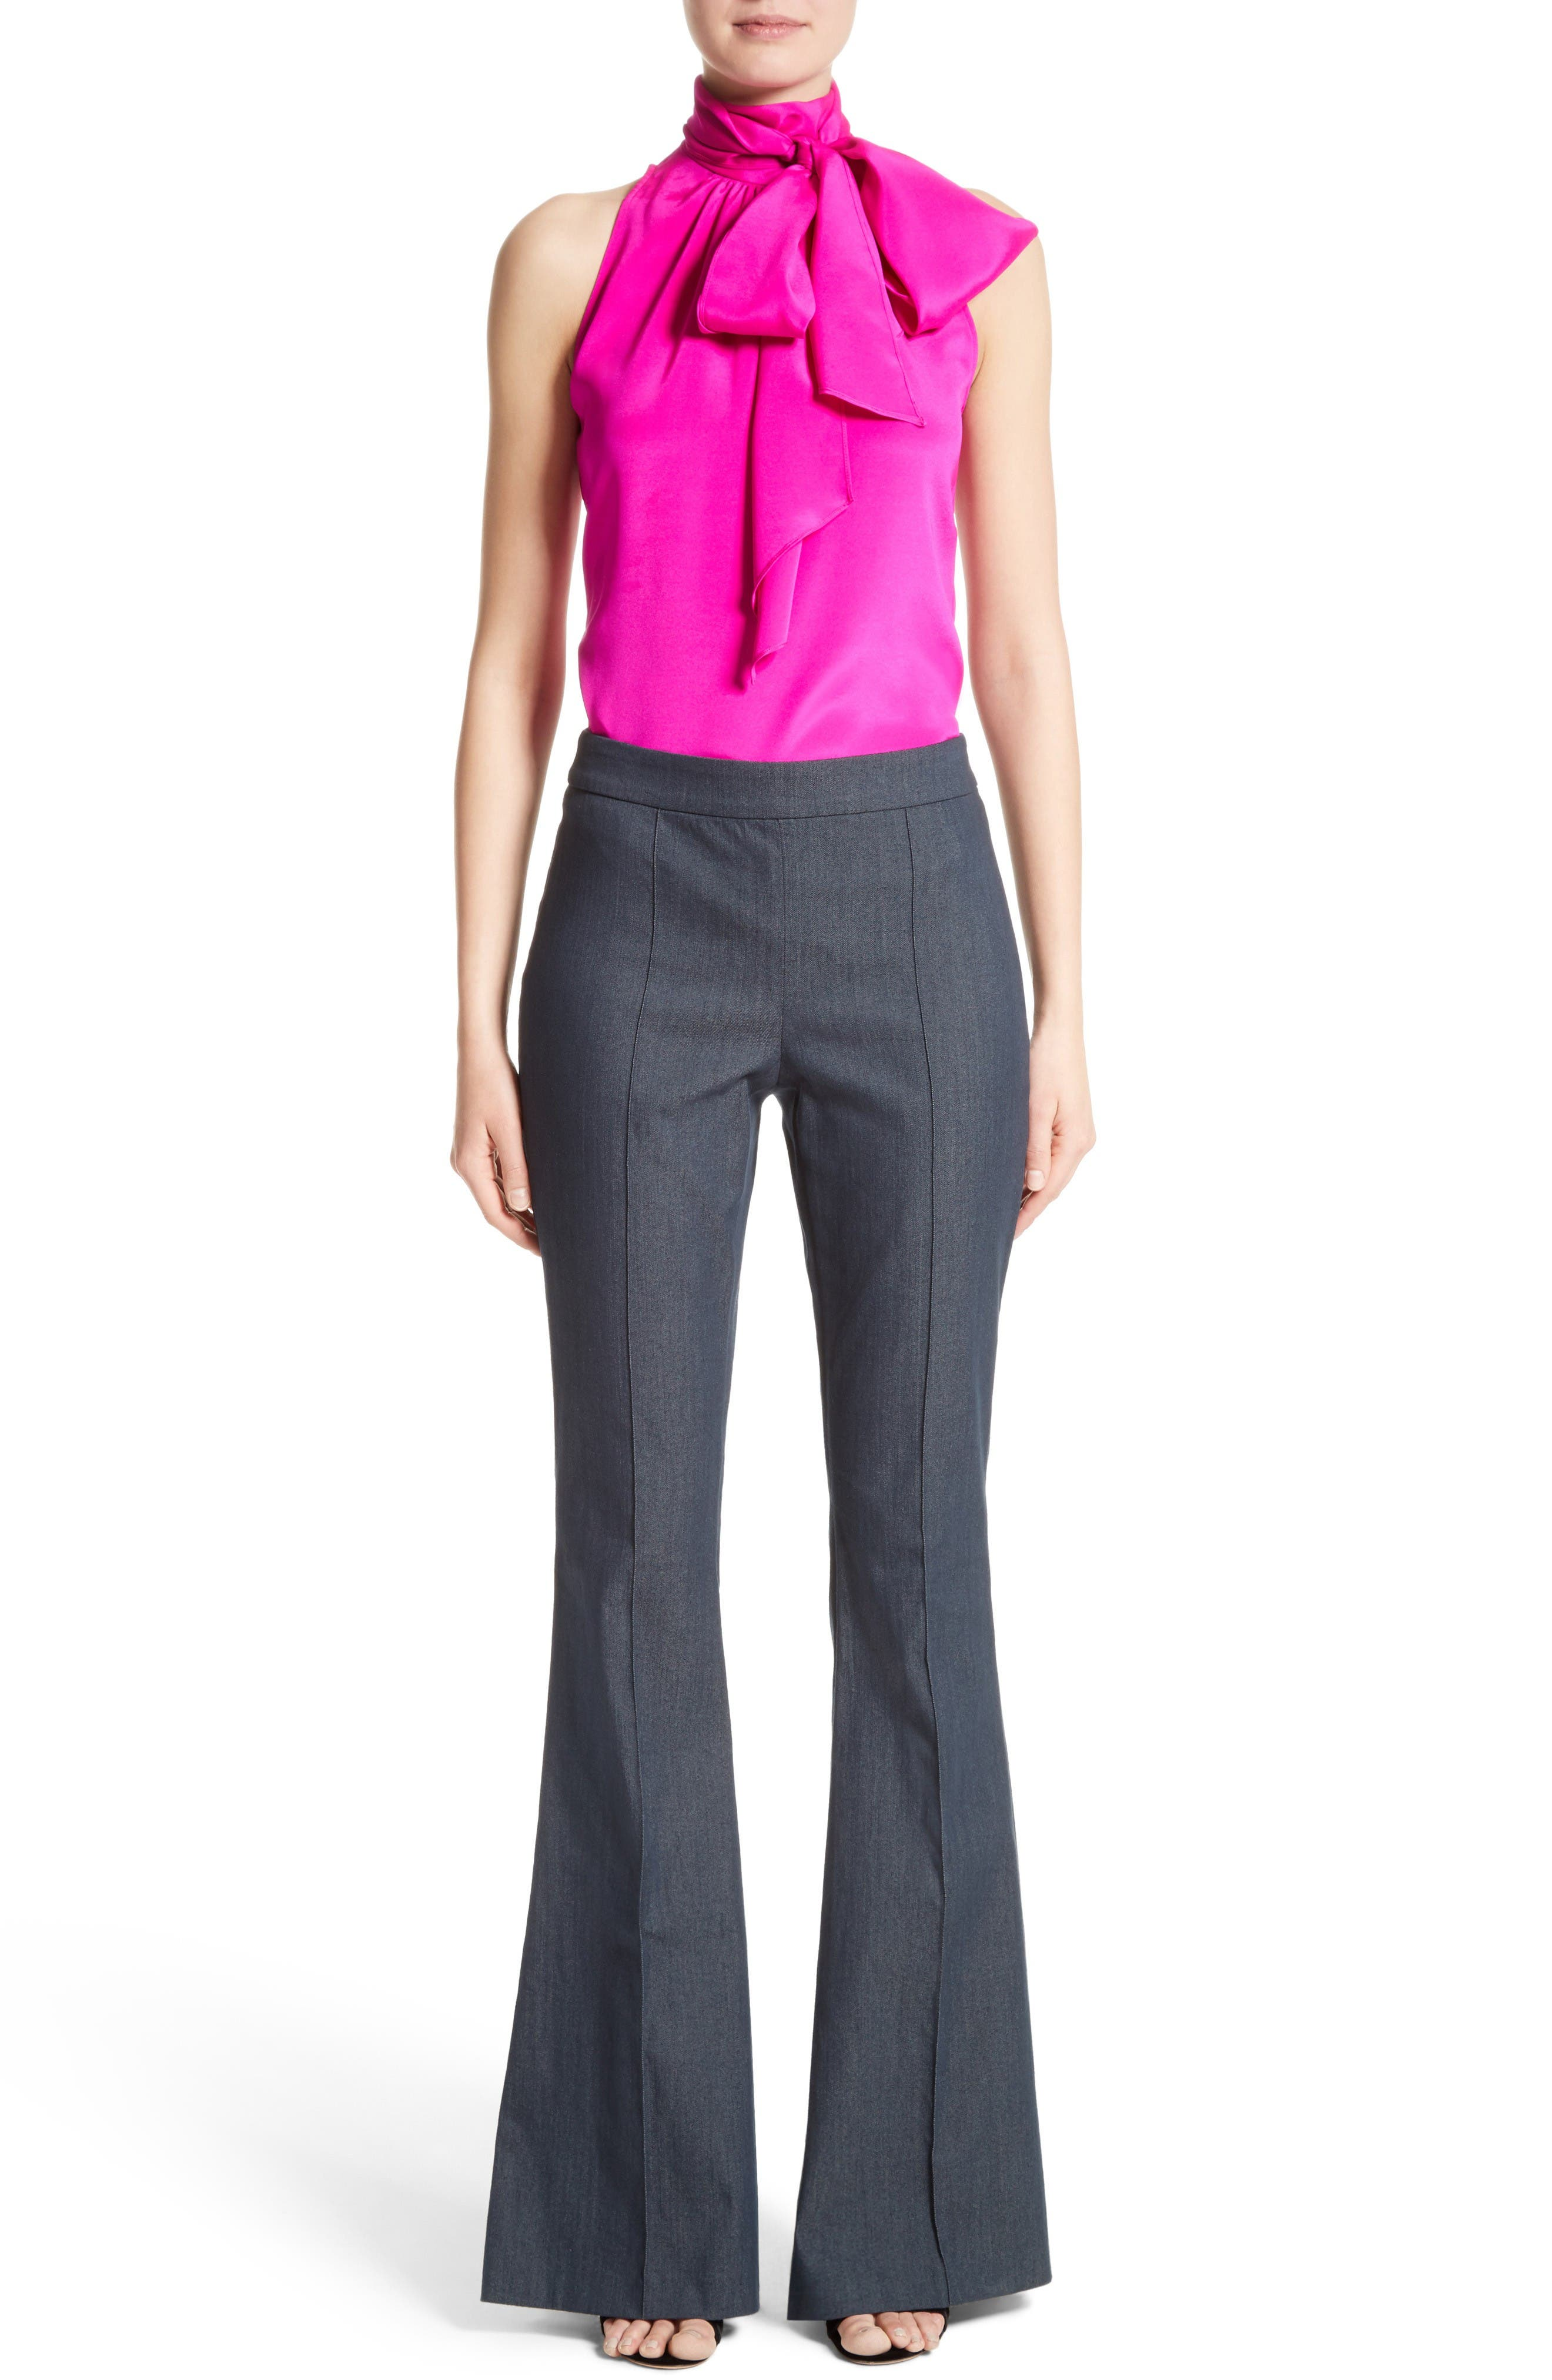 St. John Collection Blouse & Pants Outfit with Accessories